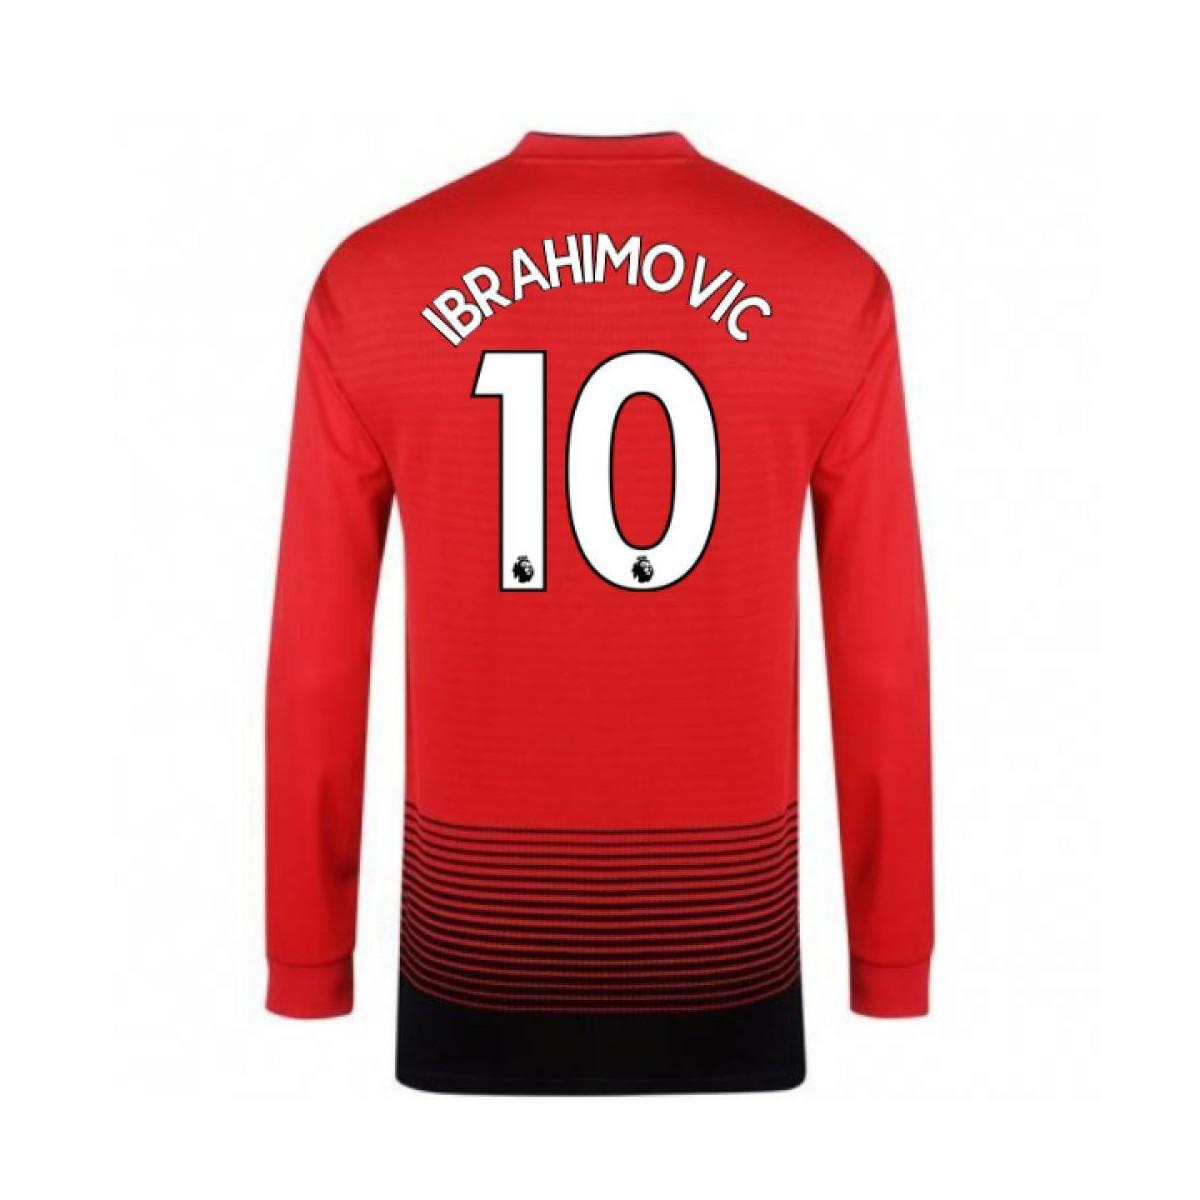 c03c866ec Adidas 2018-2019 Man Utd Home Long Sleeve Shirt (ibrahimovic 10 ...